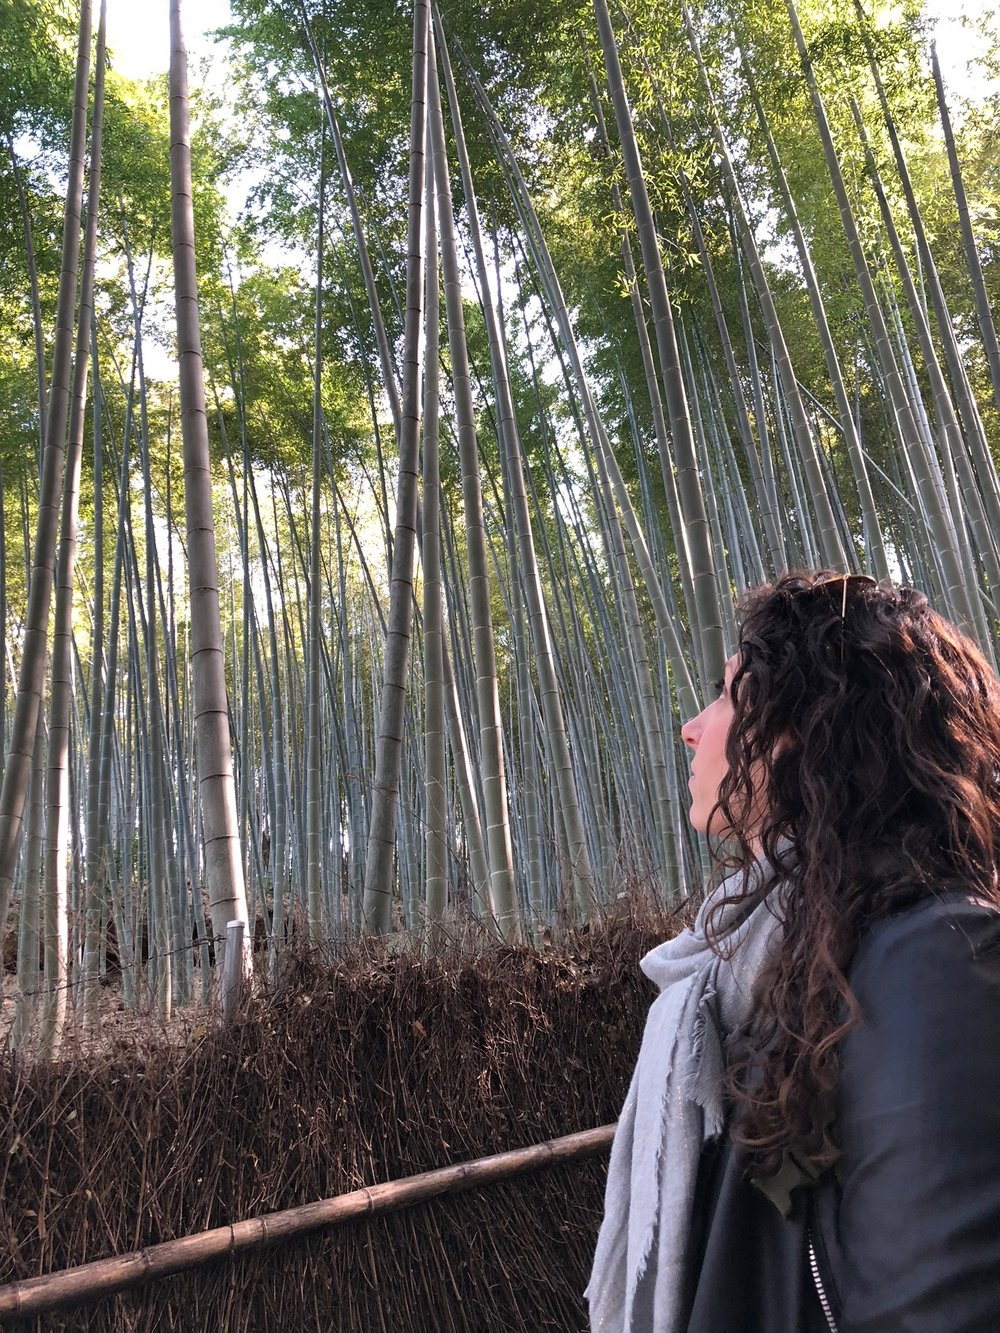 Alix pausing for a moment of reflection in the famous bamboo grove adjacent to the temple.